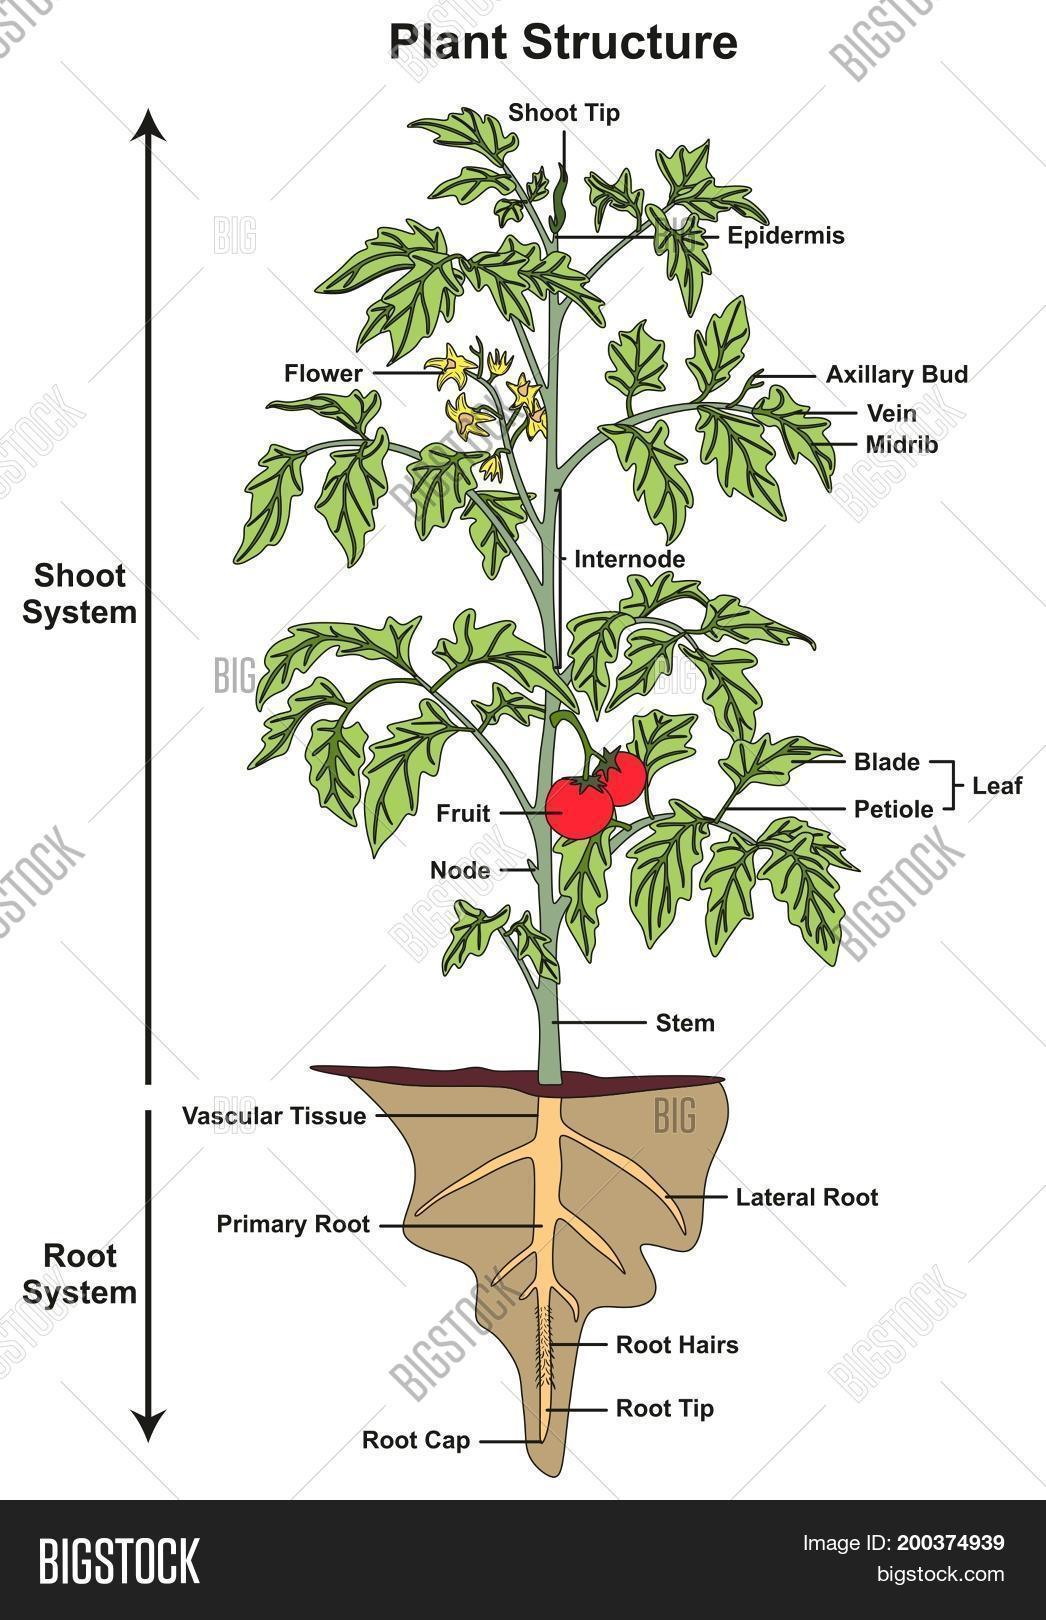 Plant Structure Image Amp Photo Free Trial